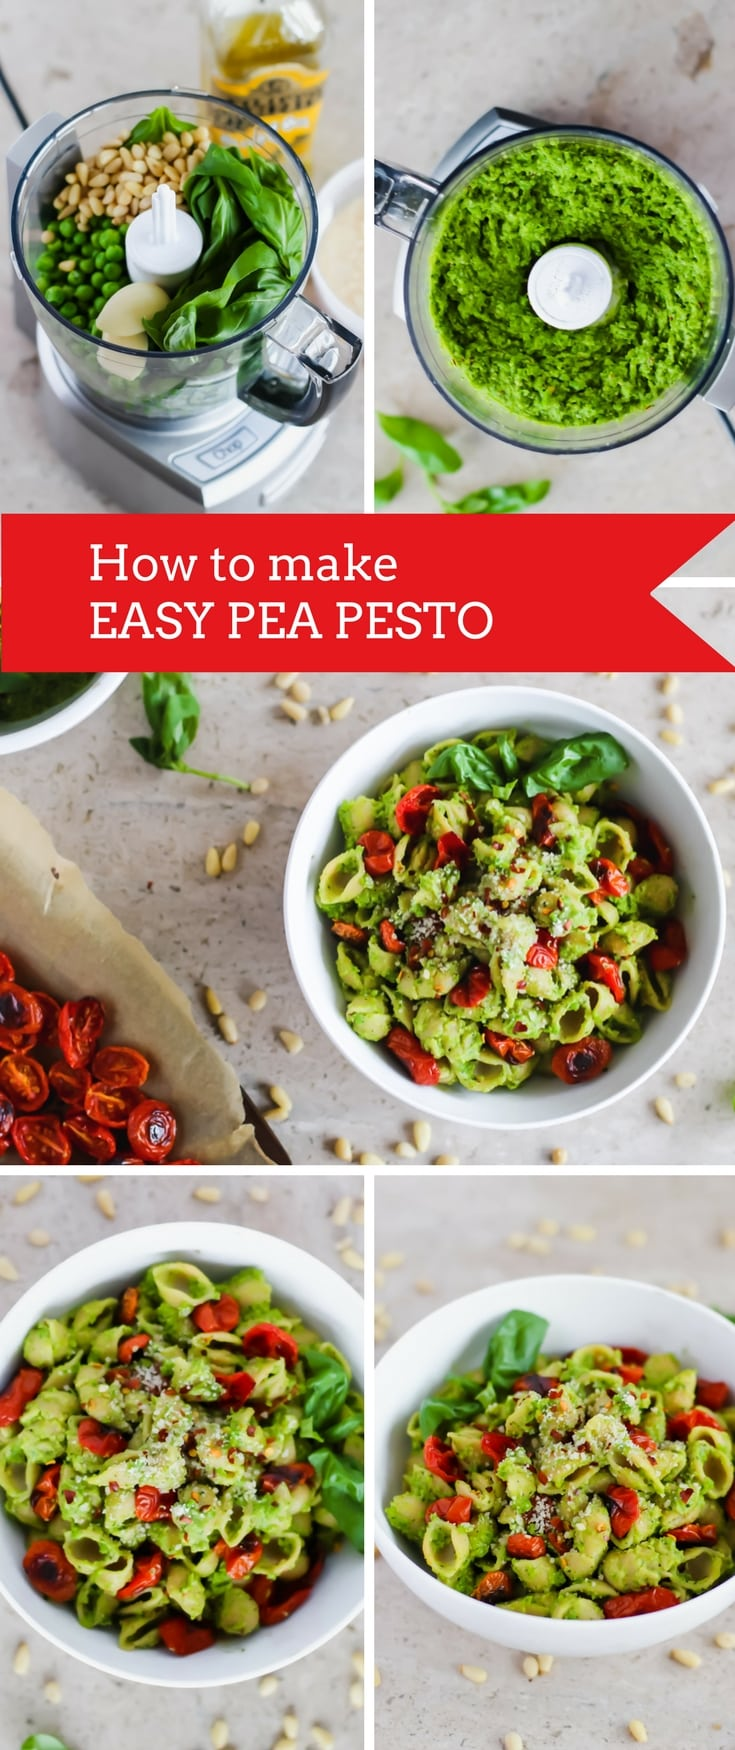 How to make Easy Pea Pesto with Roasted Tomatoes